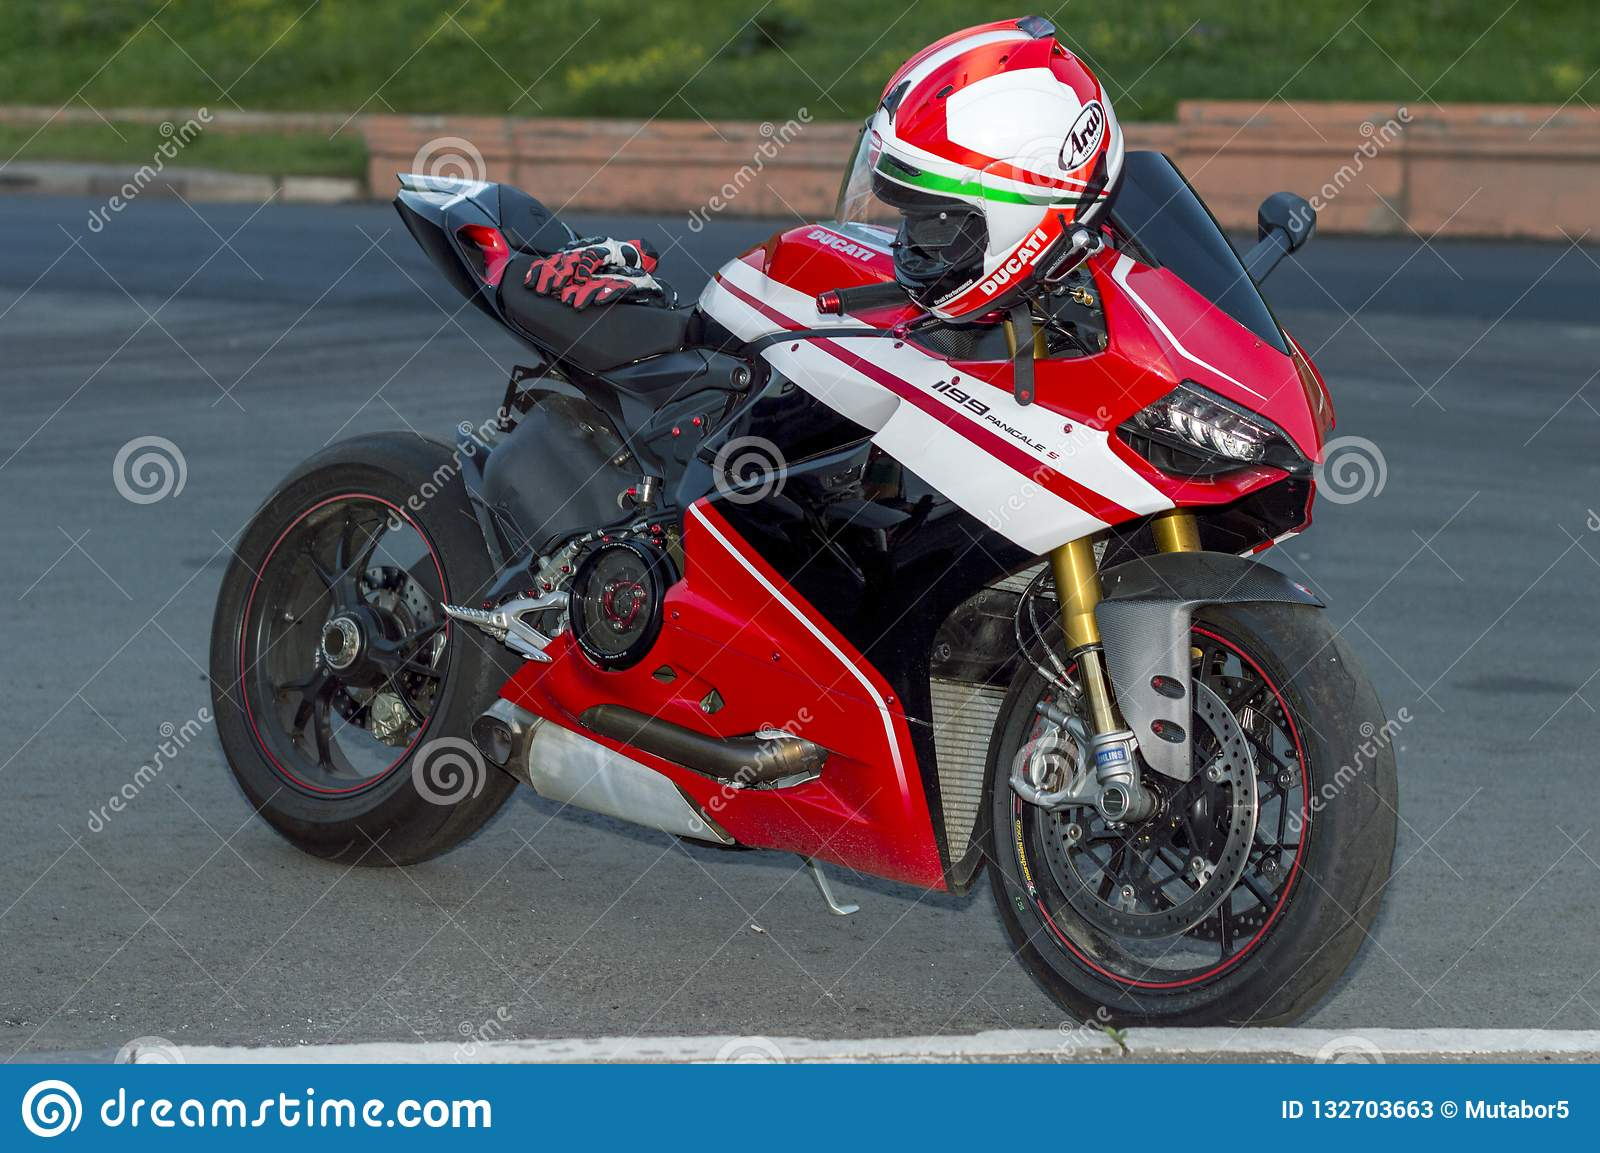 Model Motorcycle, Ducati. Left side, standing, red helmet and gloves on the seat. RUSSIA